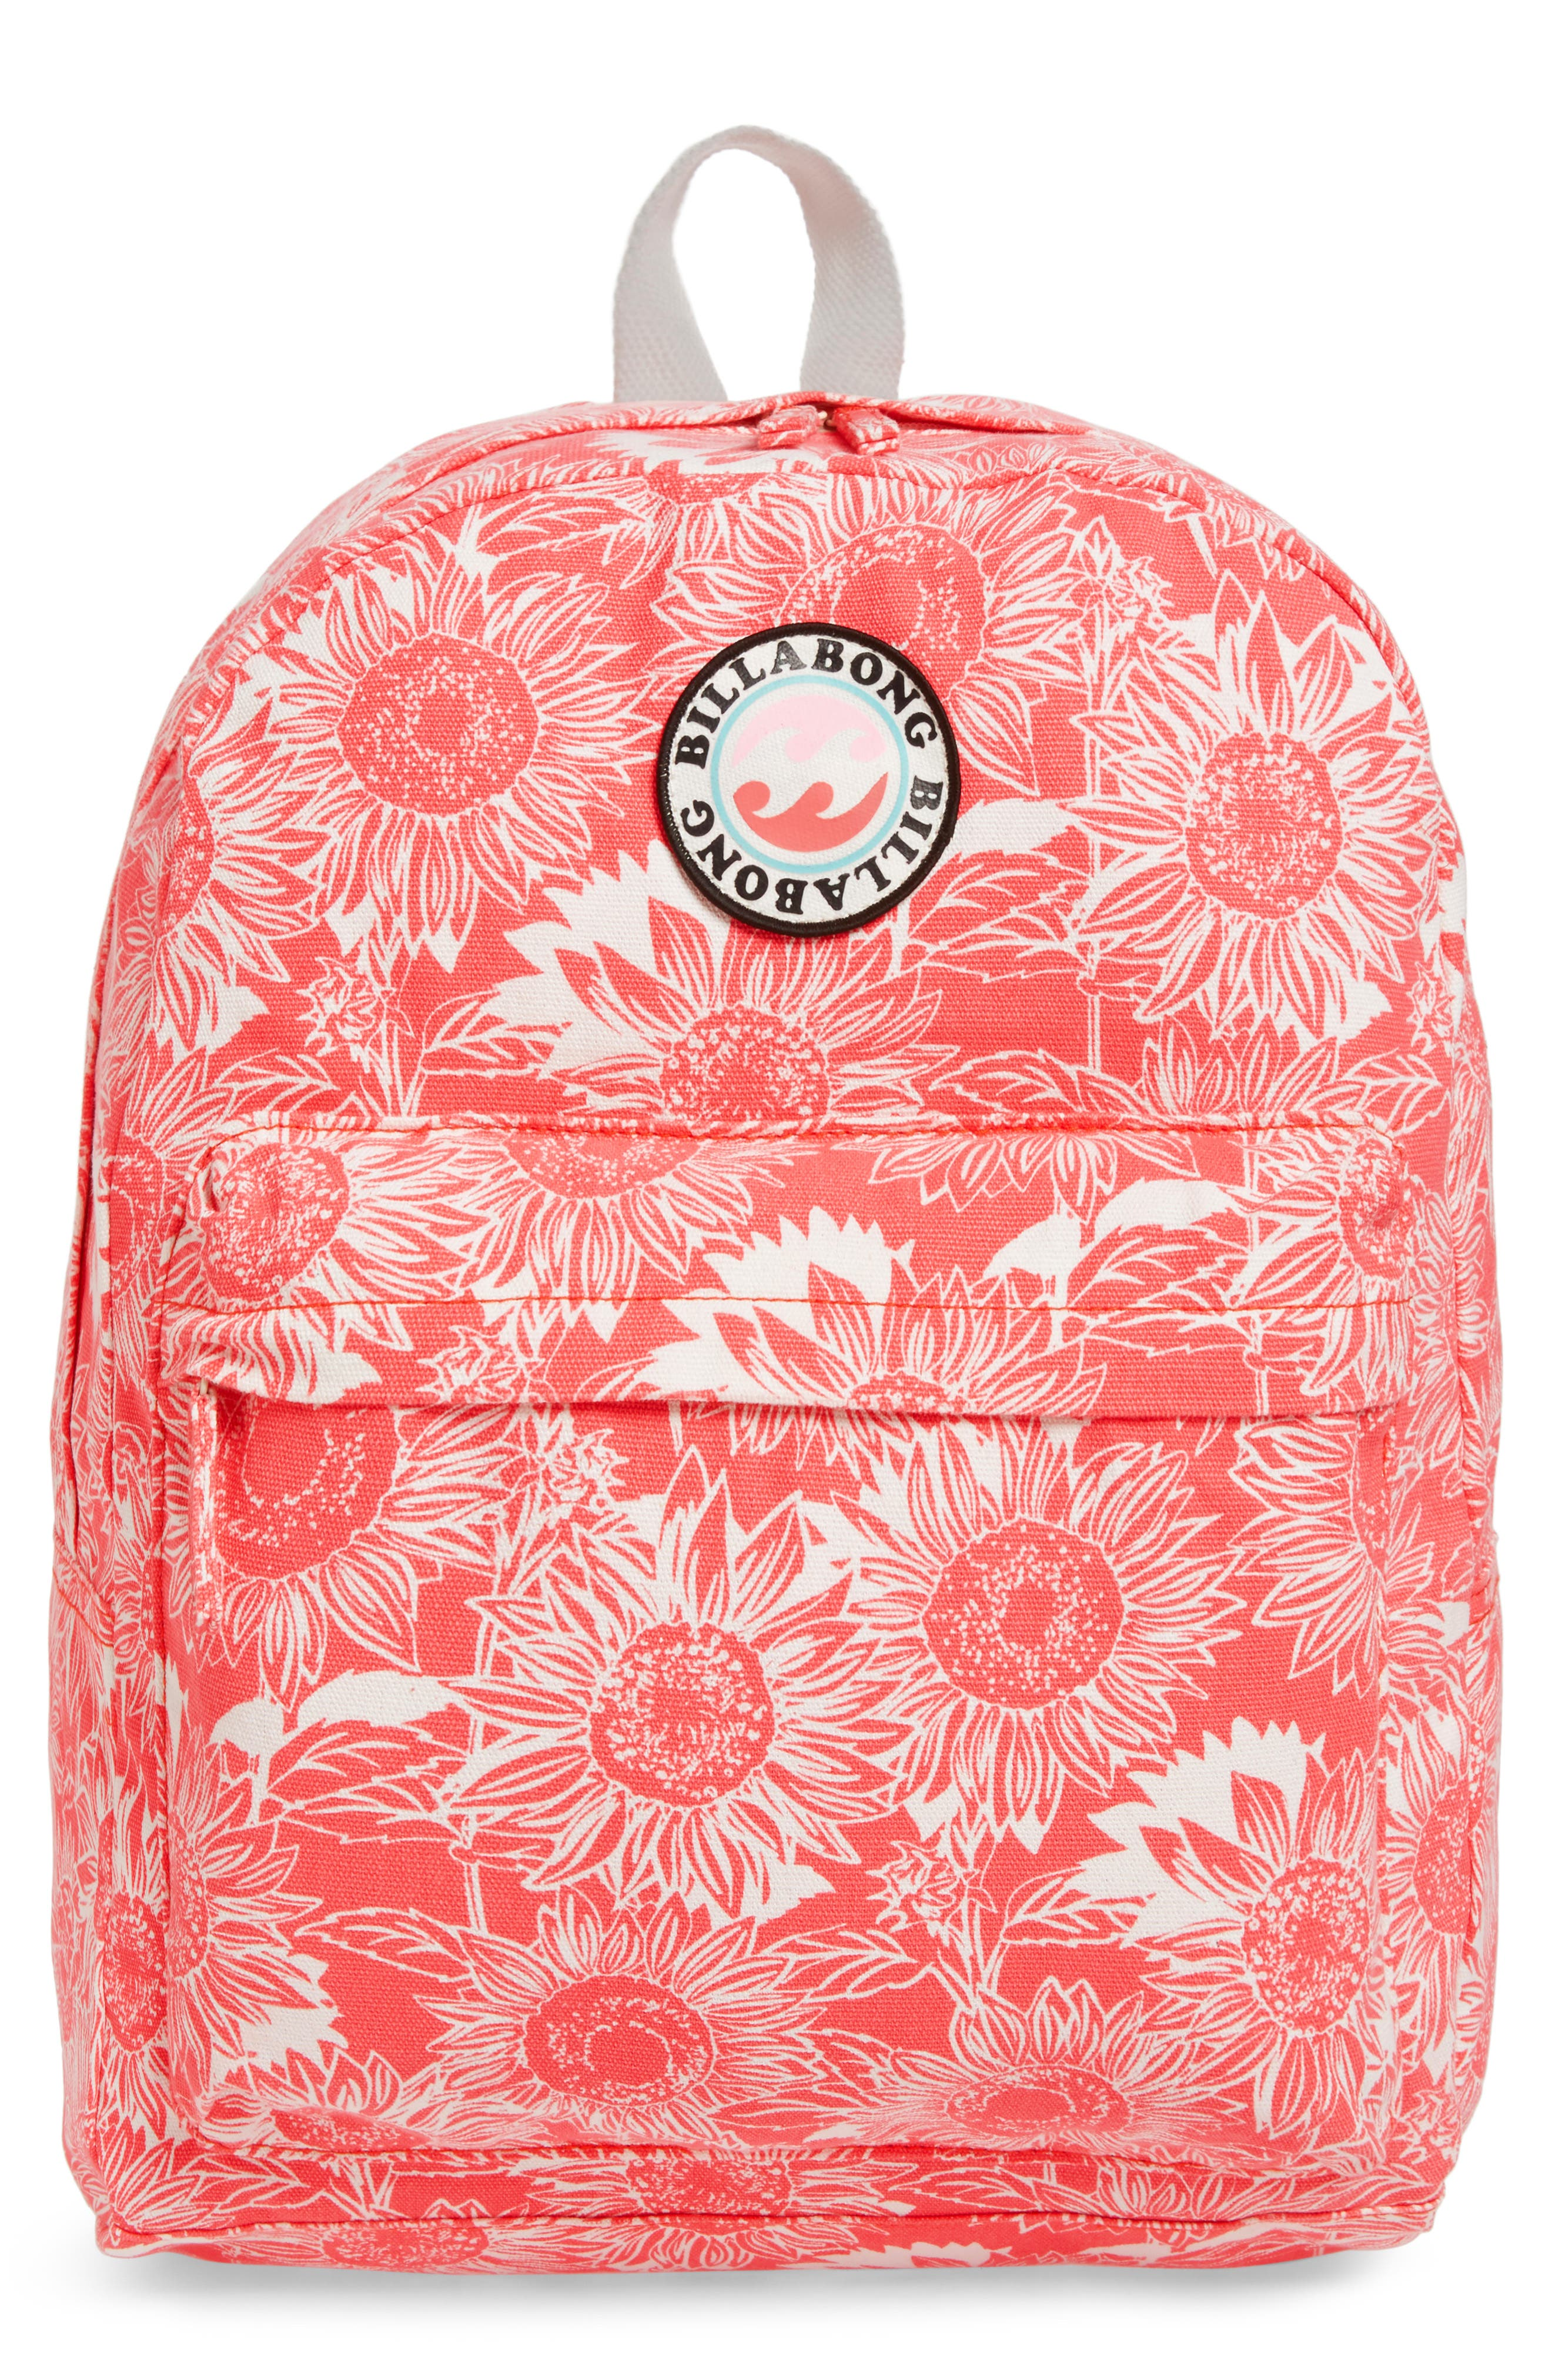 Play Date Canvas Backpack,                             Main thumbnail 1, color,                             Vintage Coral